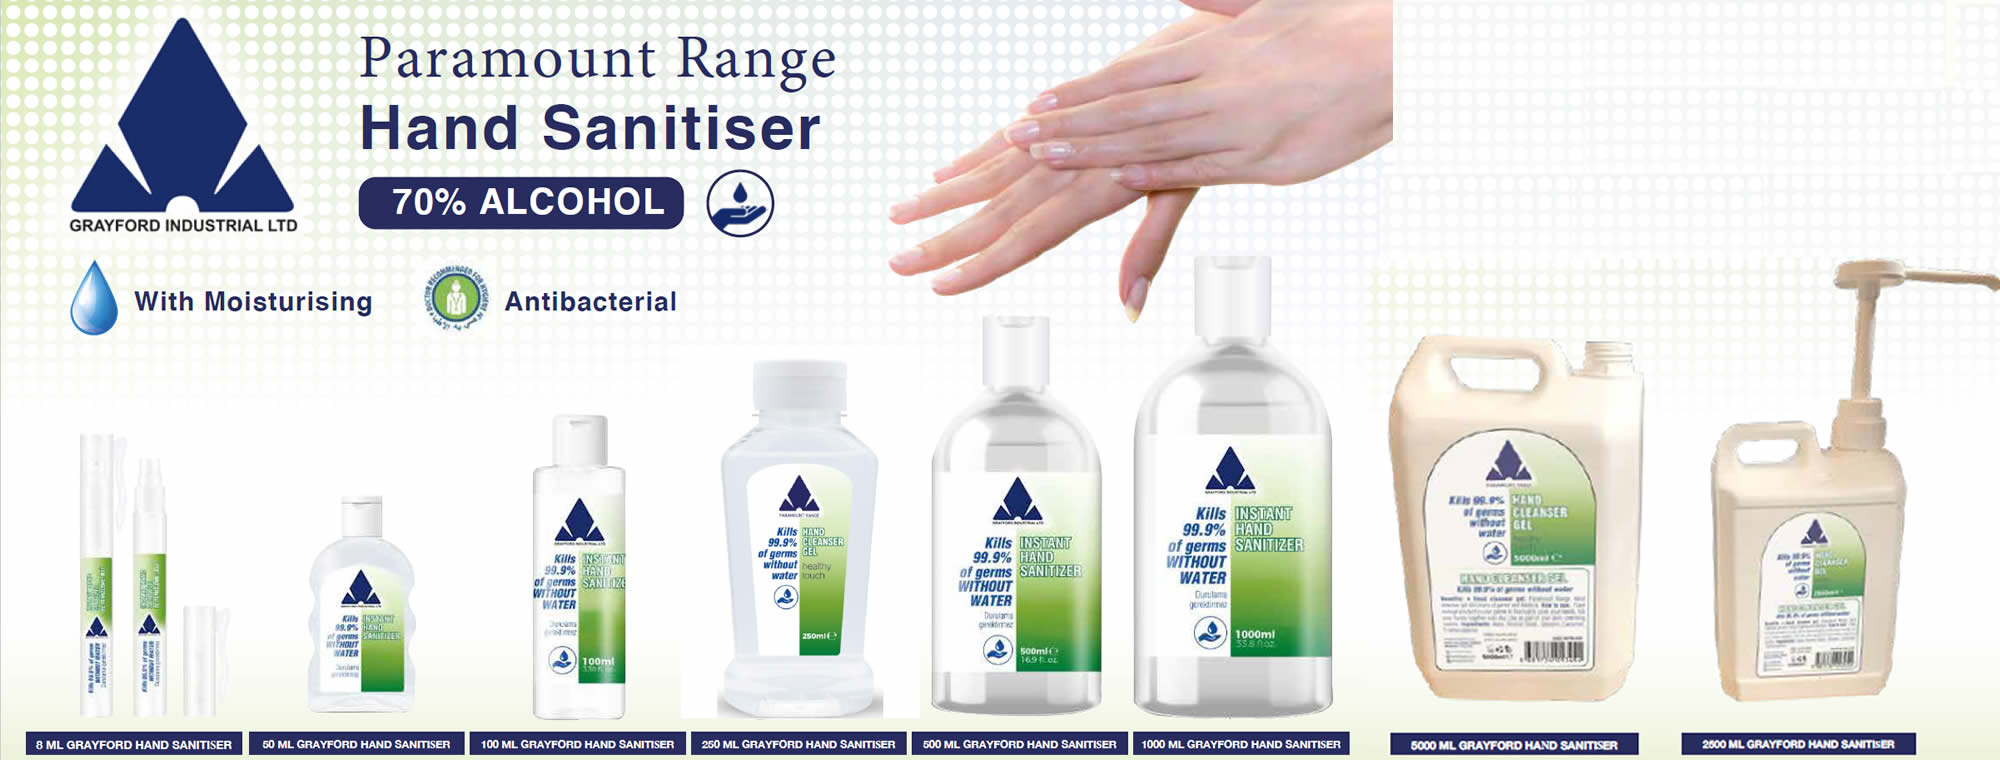 Paramount Range Hand Sanitiser Now Available